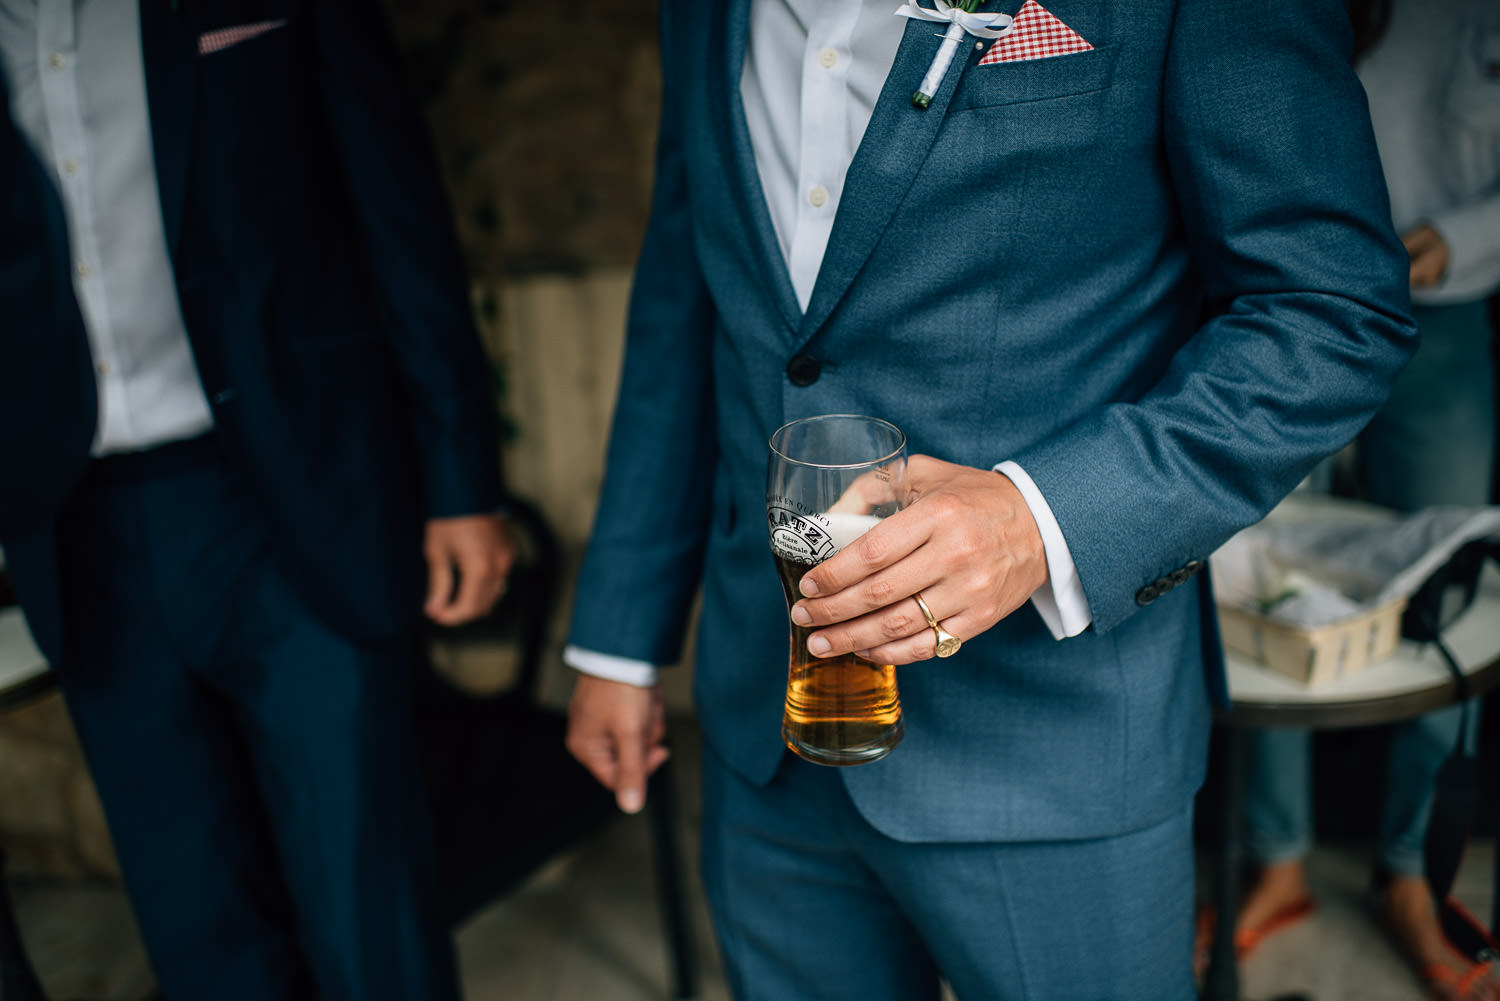 Grooms hugo boss suit in Chateau de la Bourlie Wedding by creative and alternative destination wedding photographer the shannons photography